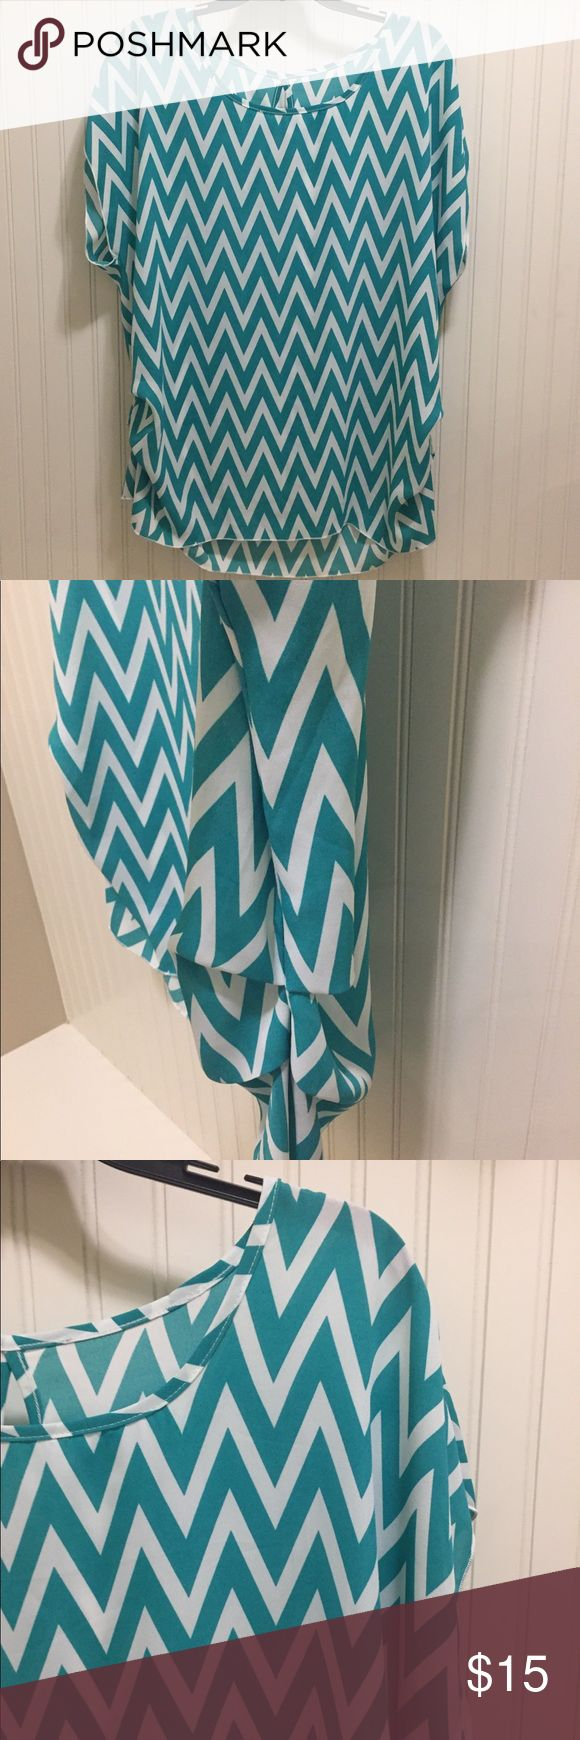 Cute ruched side chevron blouse Cute ruched side chevron blouse Tops Blouses